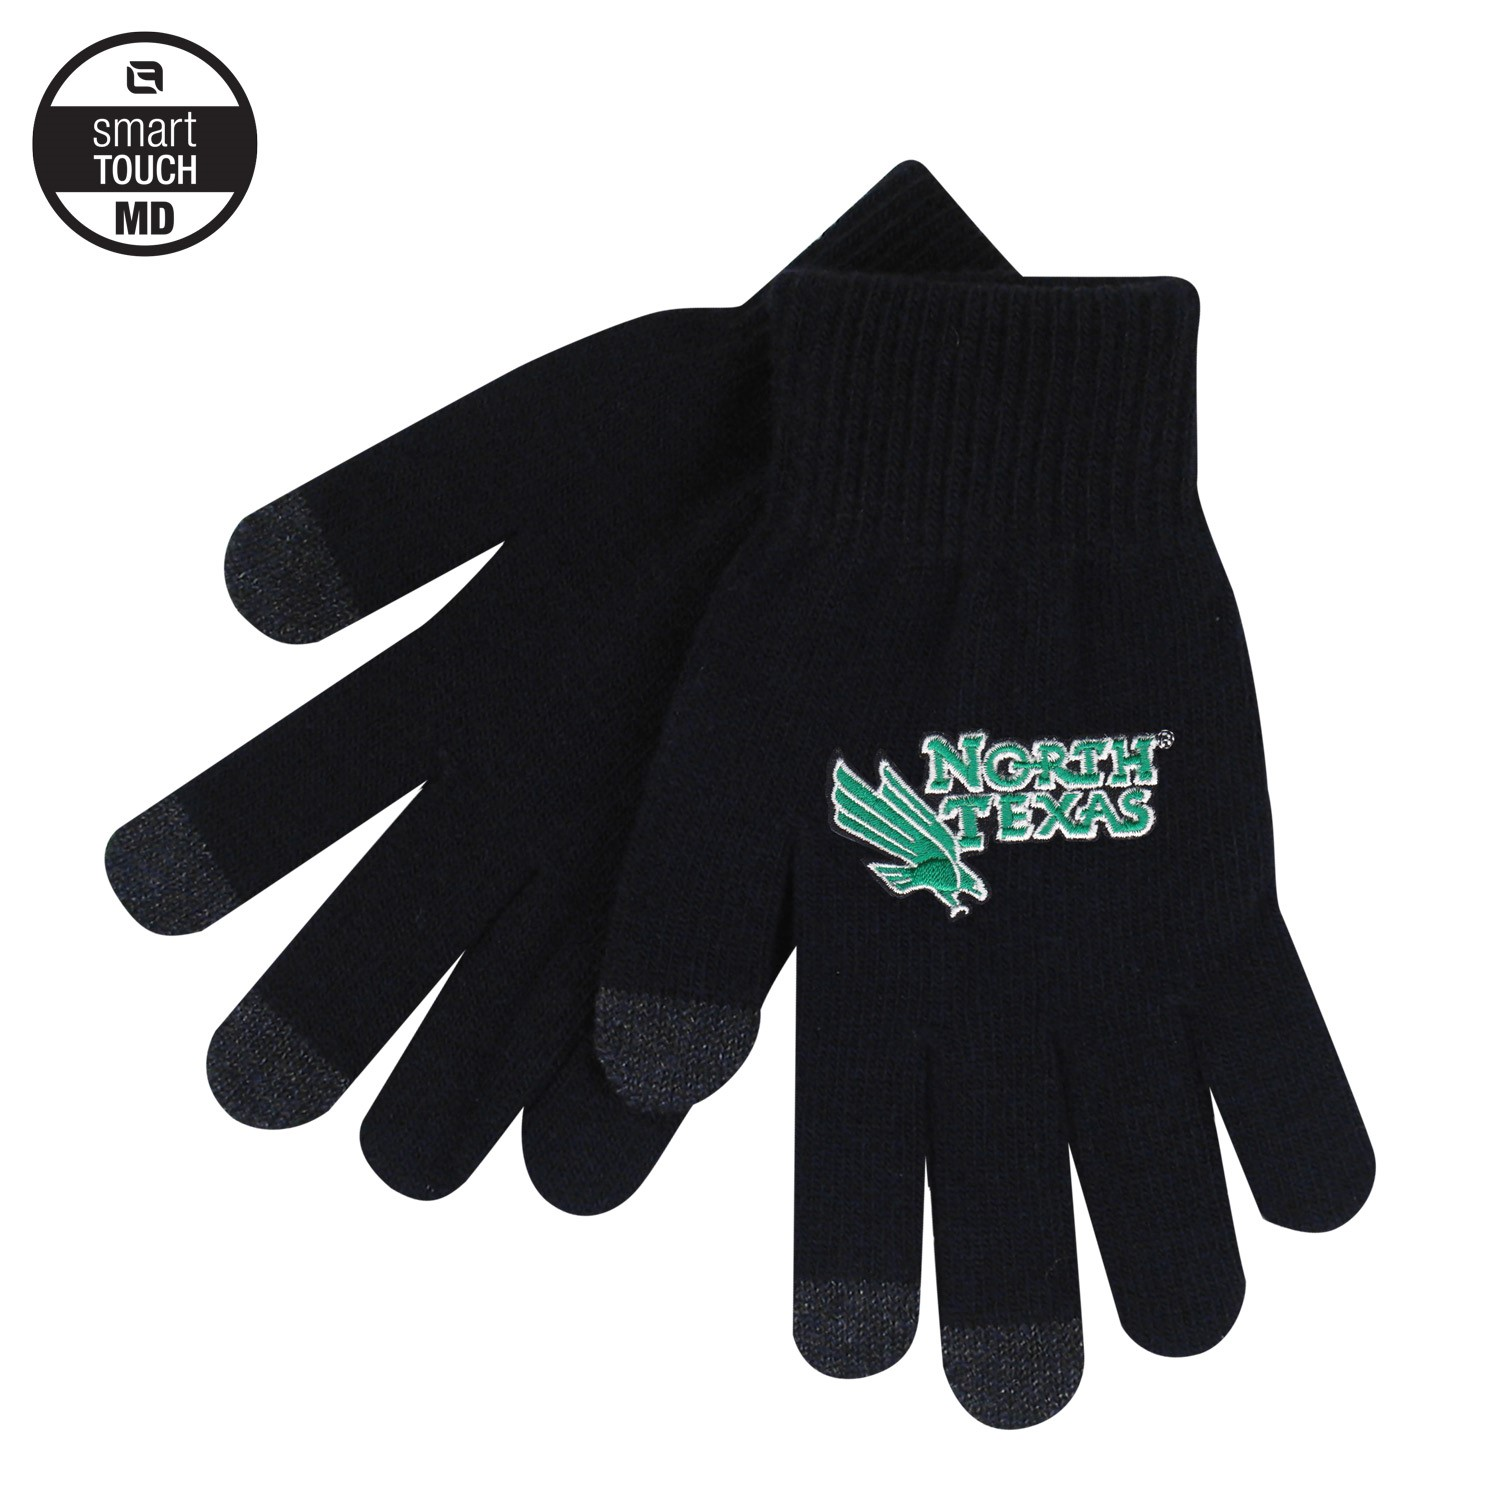 iTEXT GLOVES